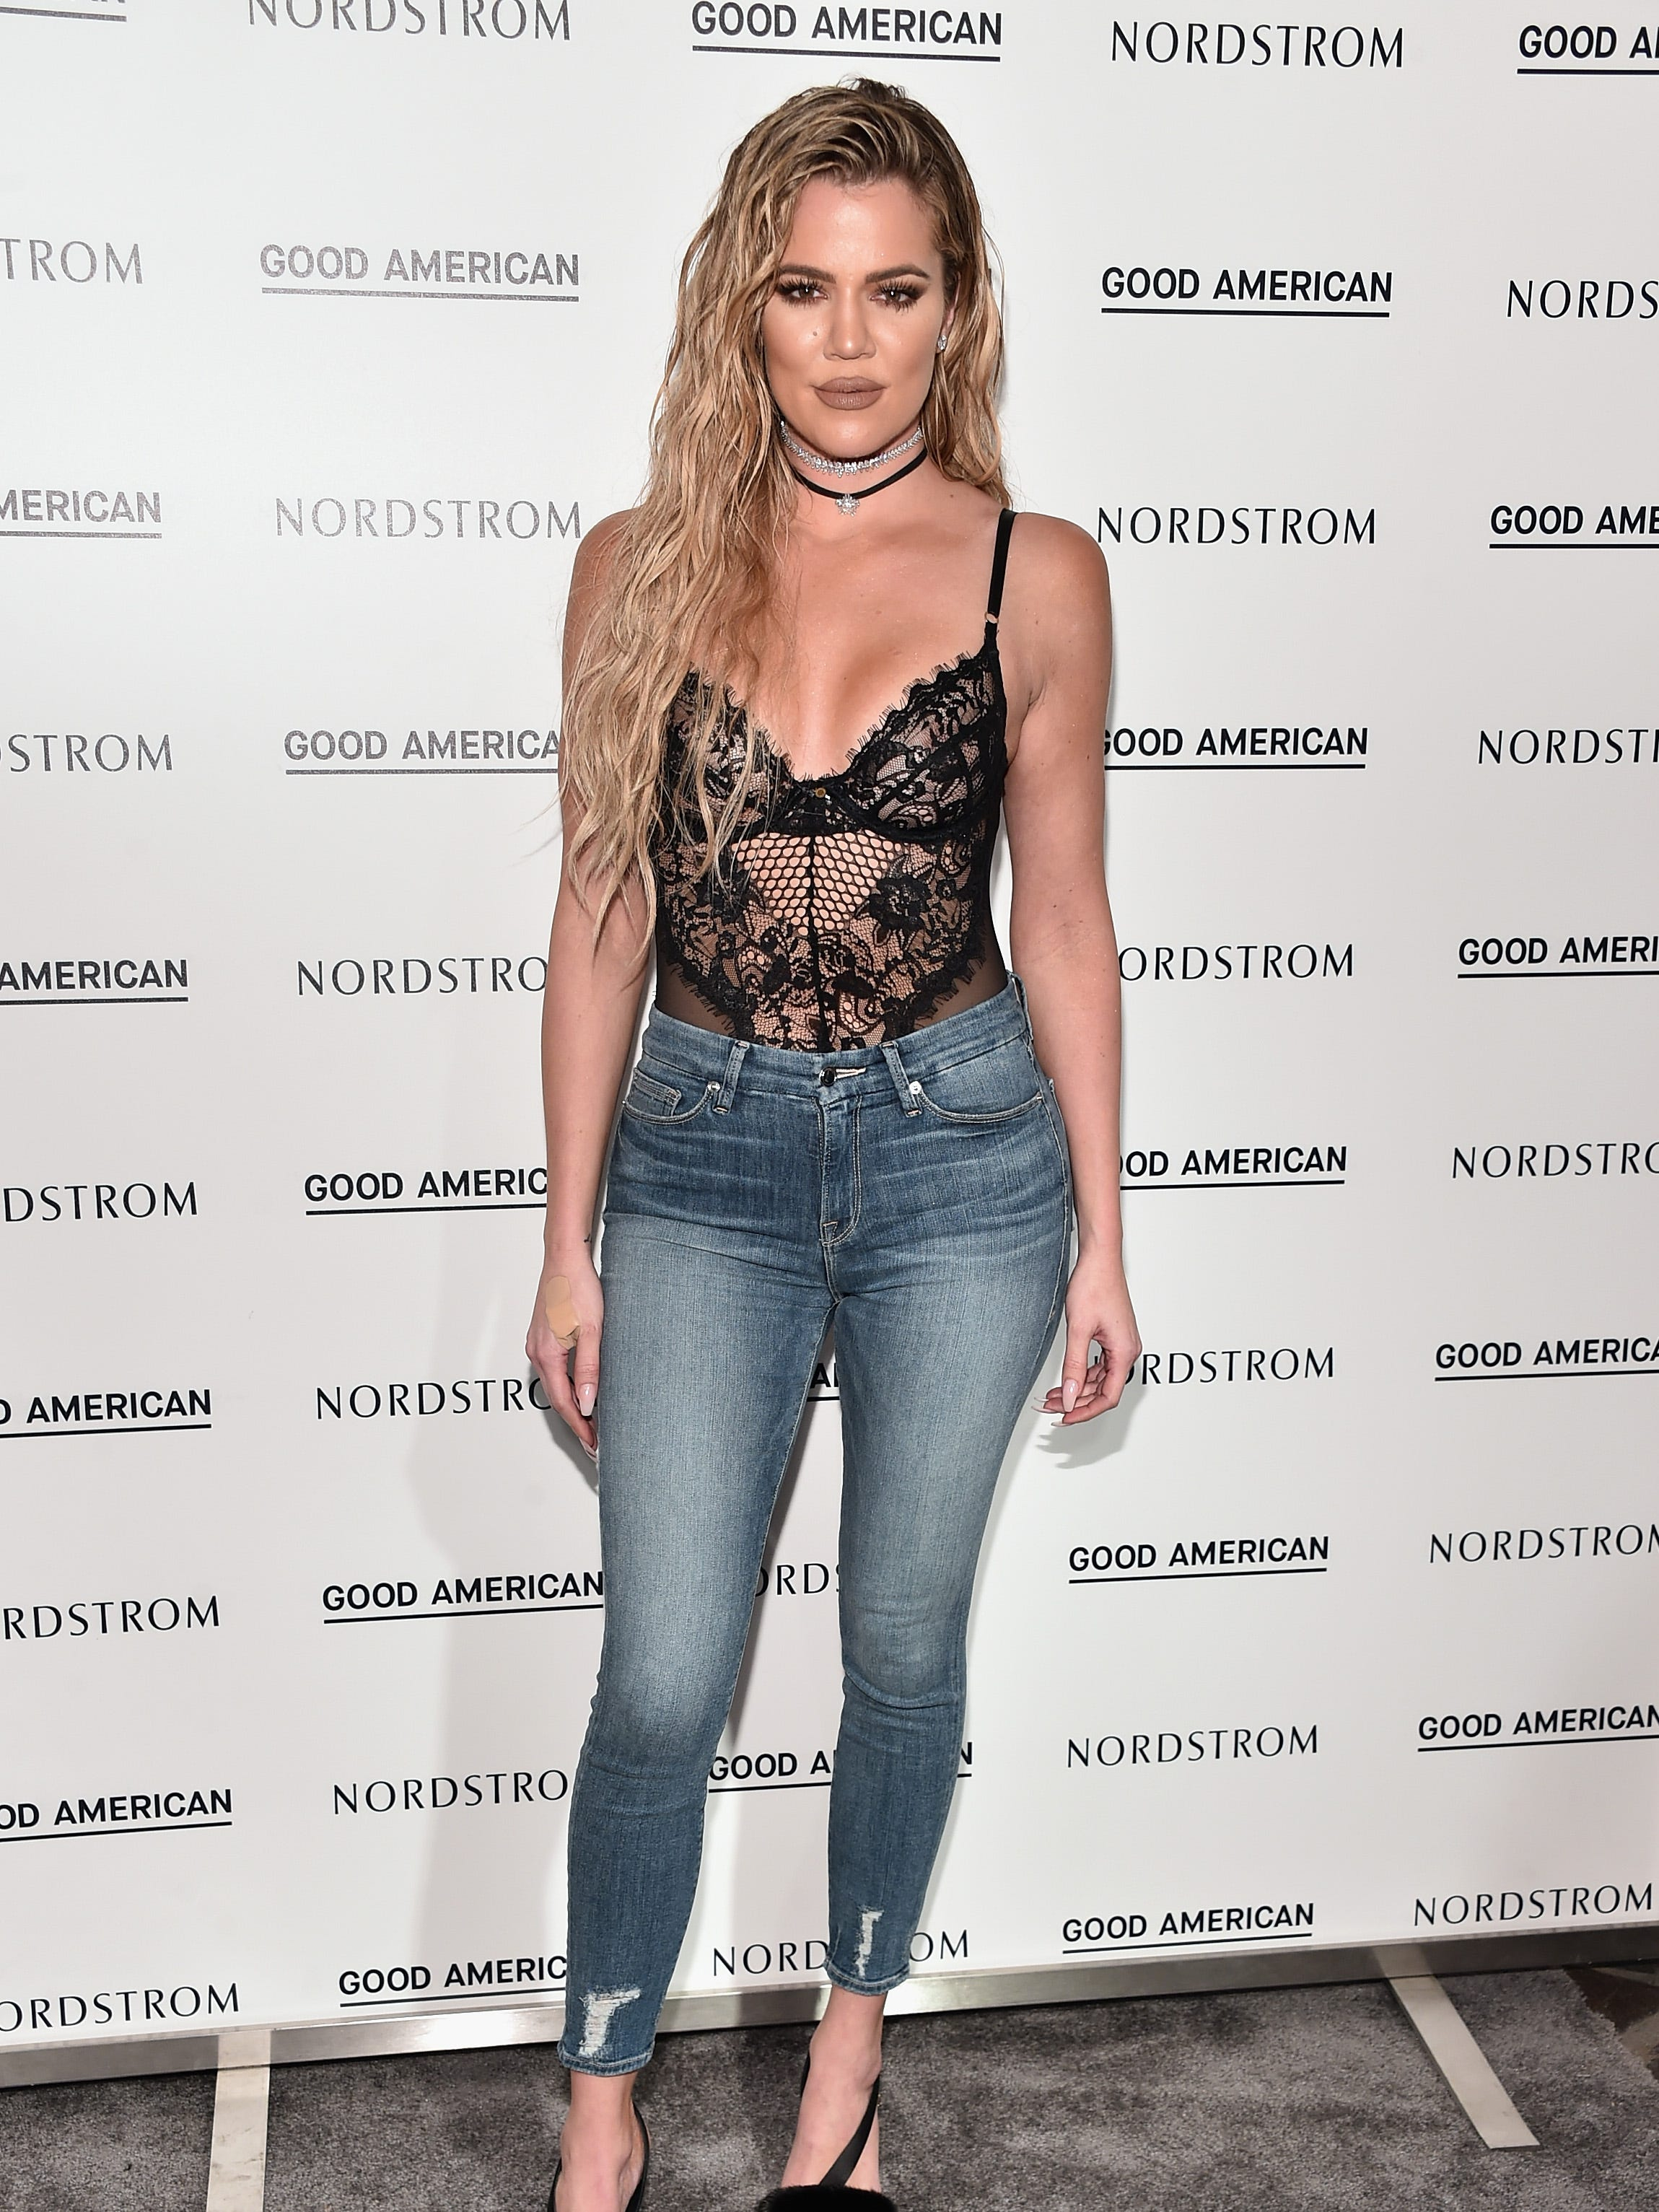 Khloe Kardashian's 7 tips to a 'Revenge Body'